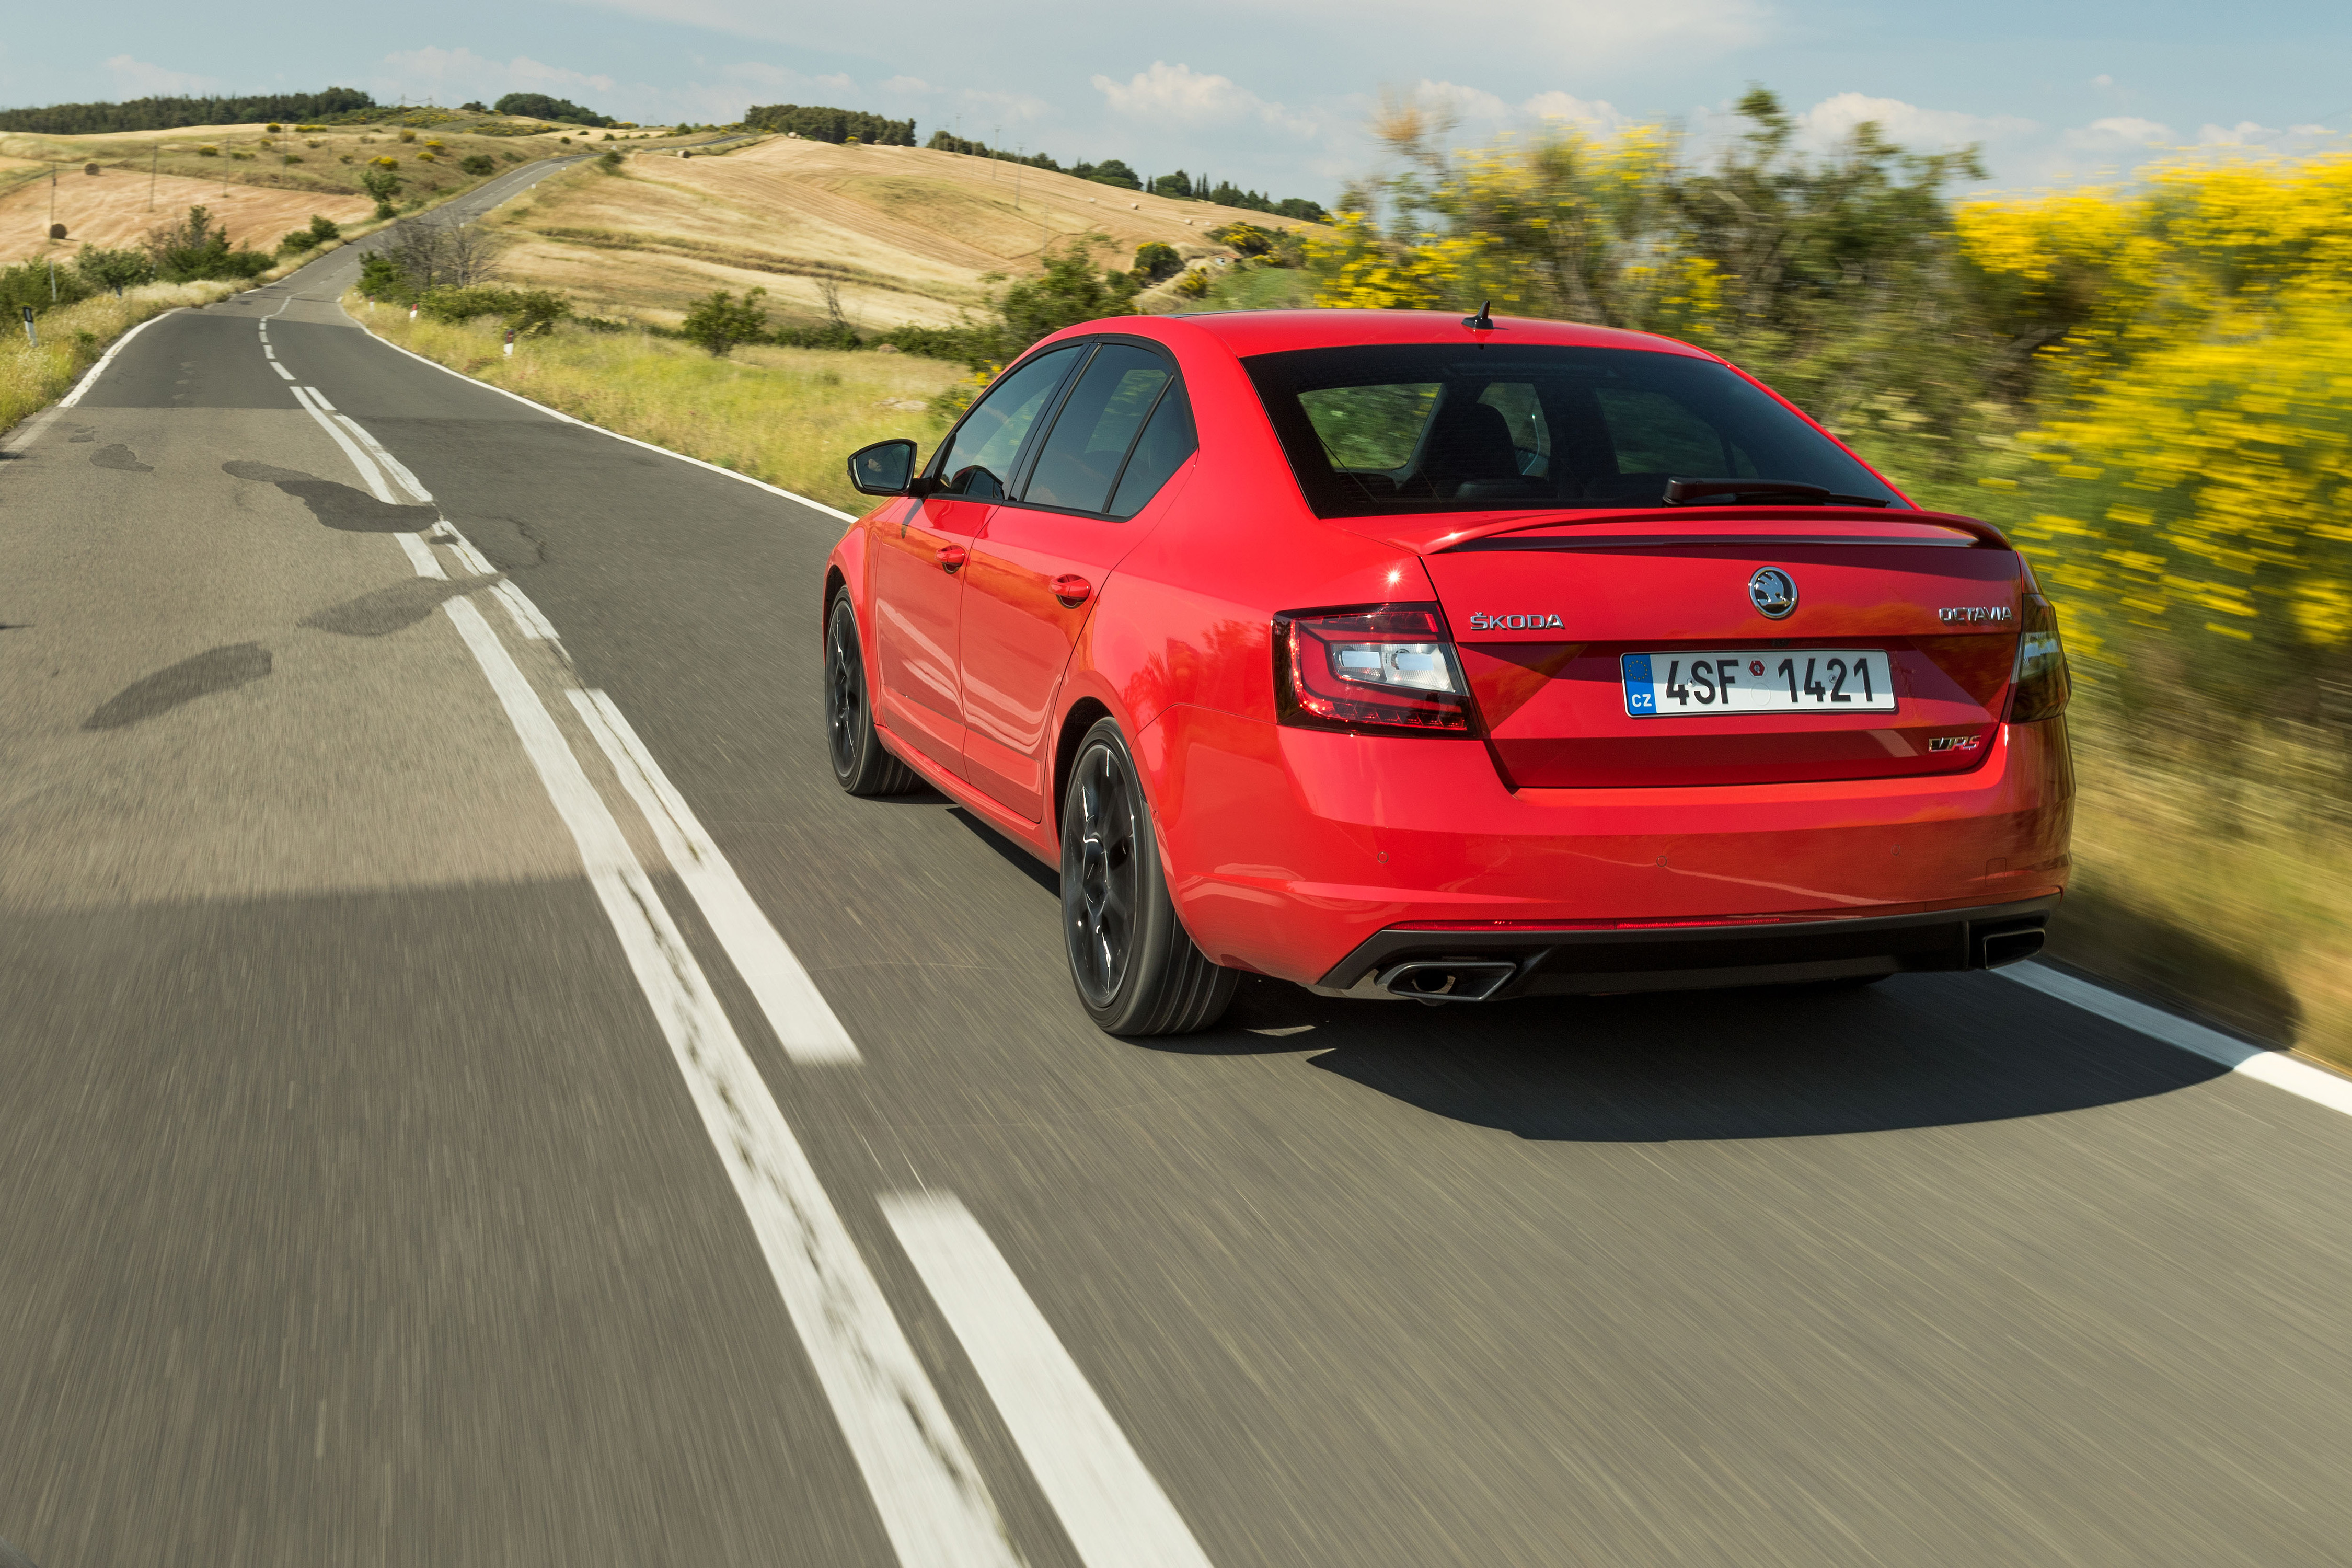 Koda Octavia Rs 245 Sporty Spacious And Practical Press Kit Led Driven Tail Brake Light Cluster